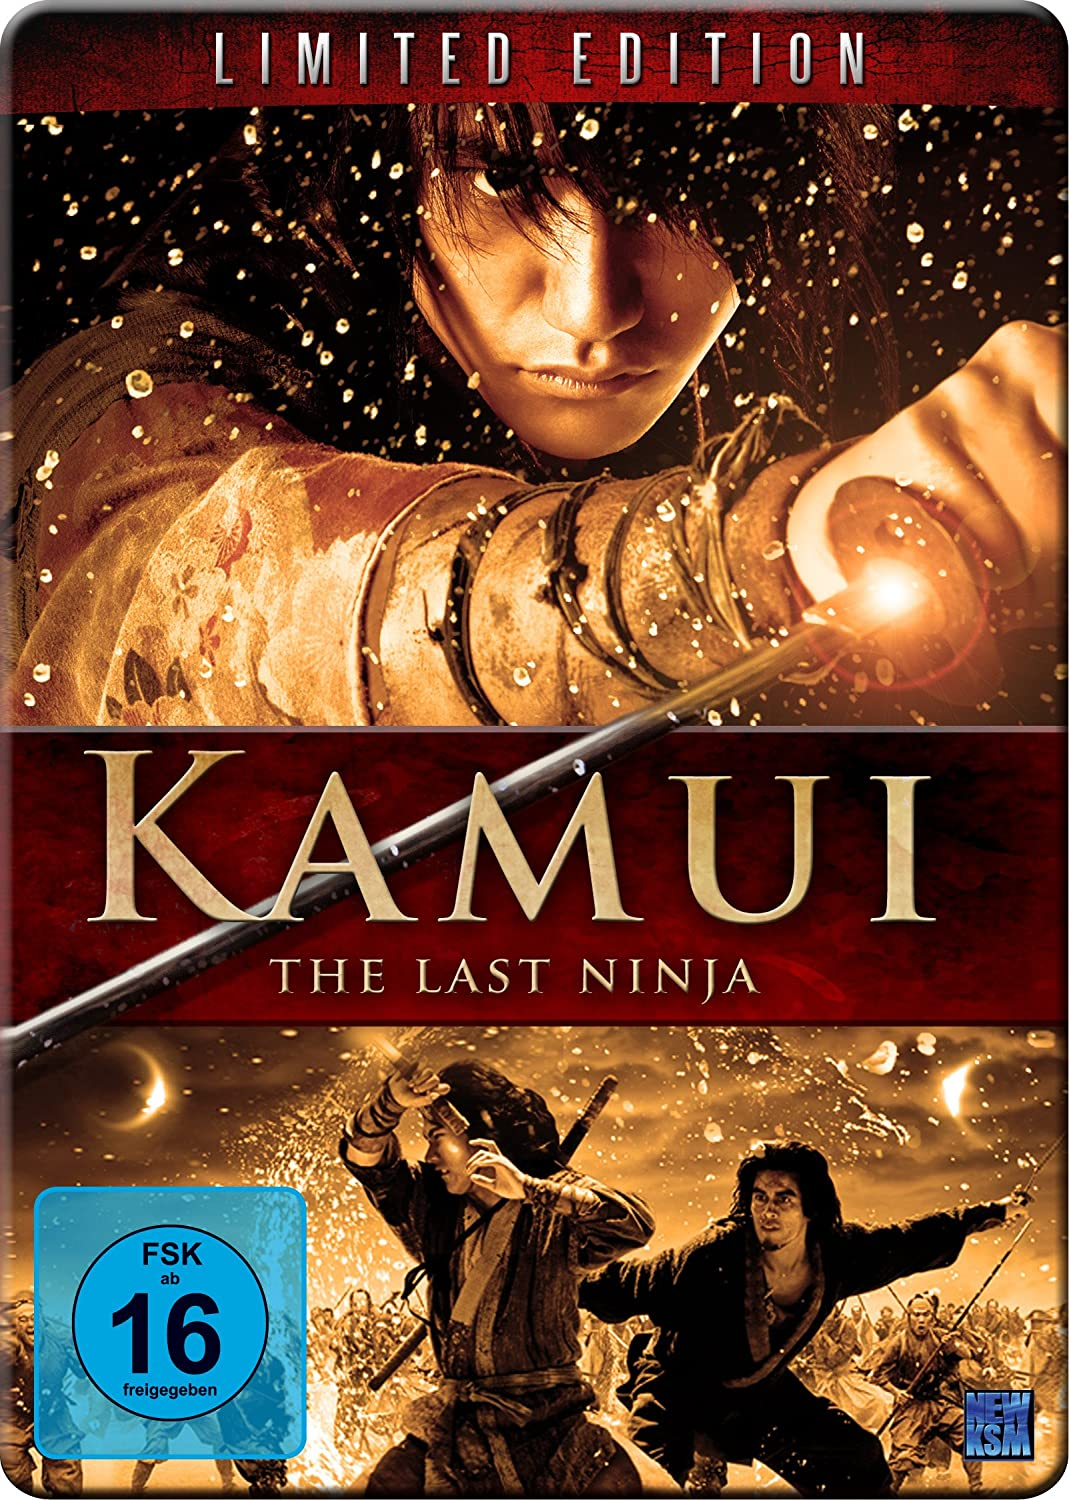 Amazon.com: Kamui - the Last Ninja - Limited Edition [Import ...